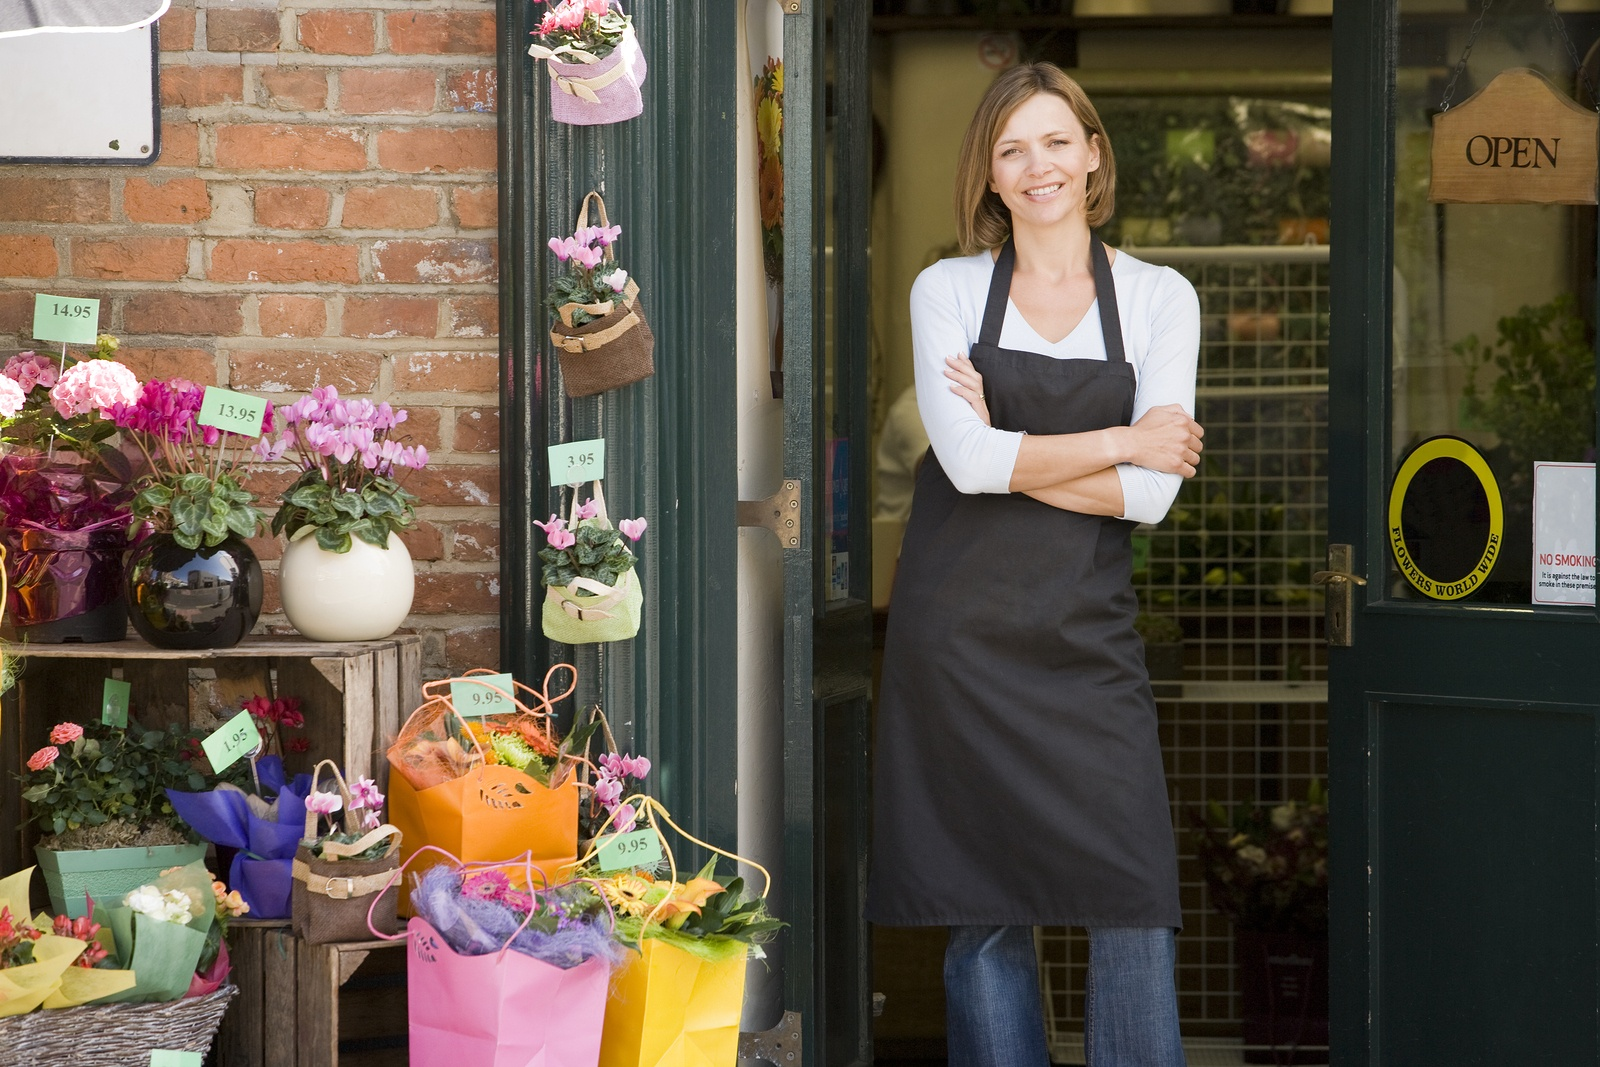 How Do I Qualify For A Small Business Loan?